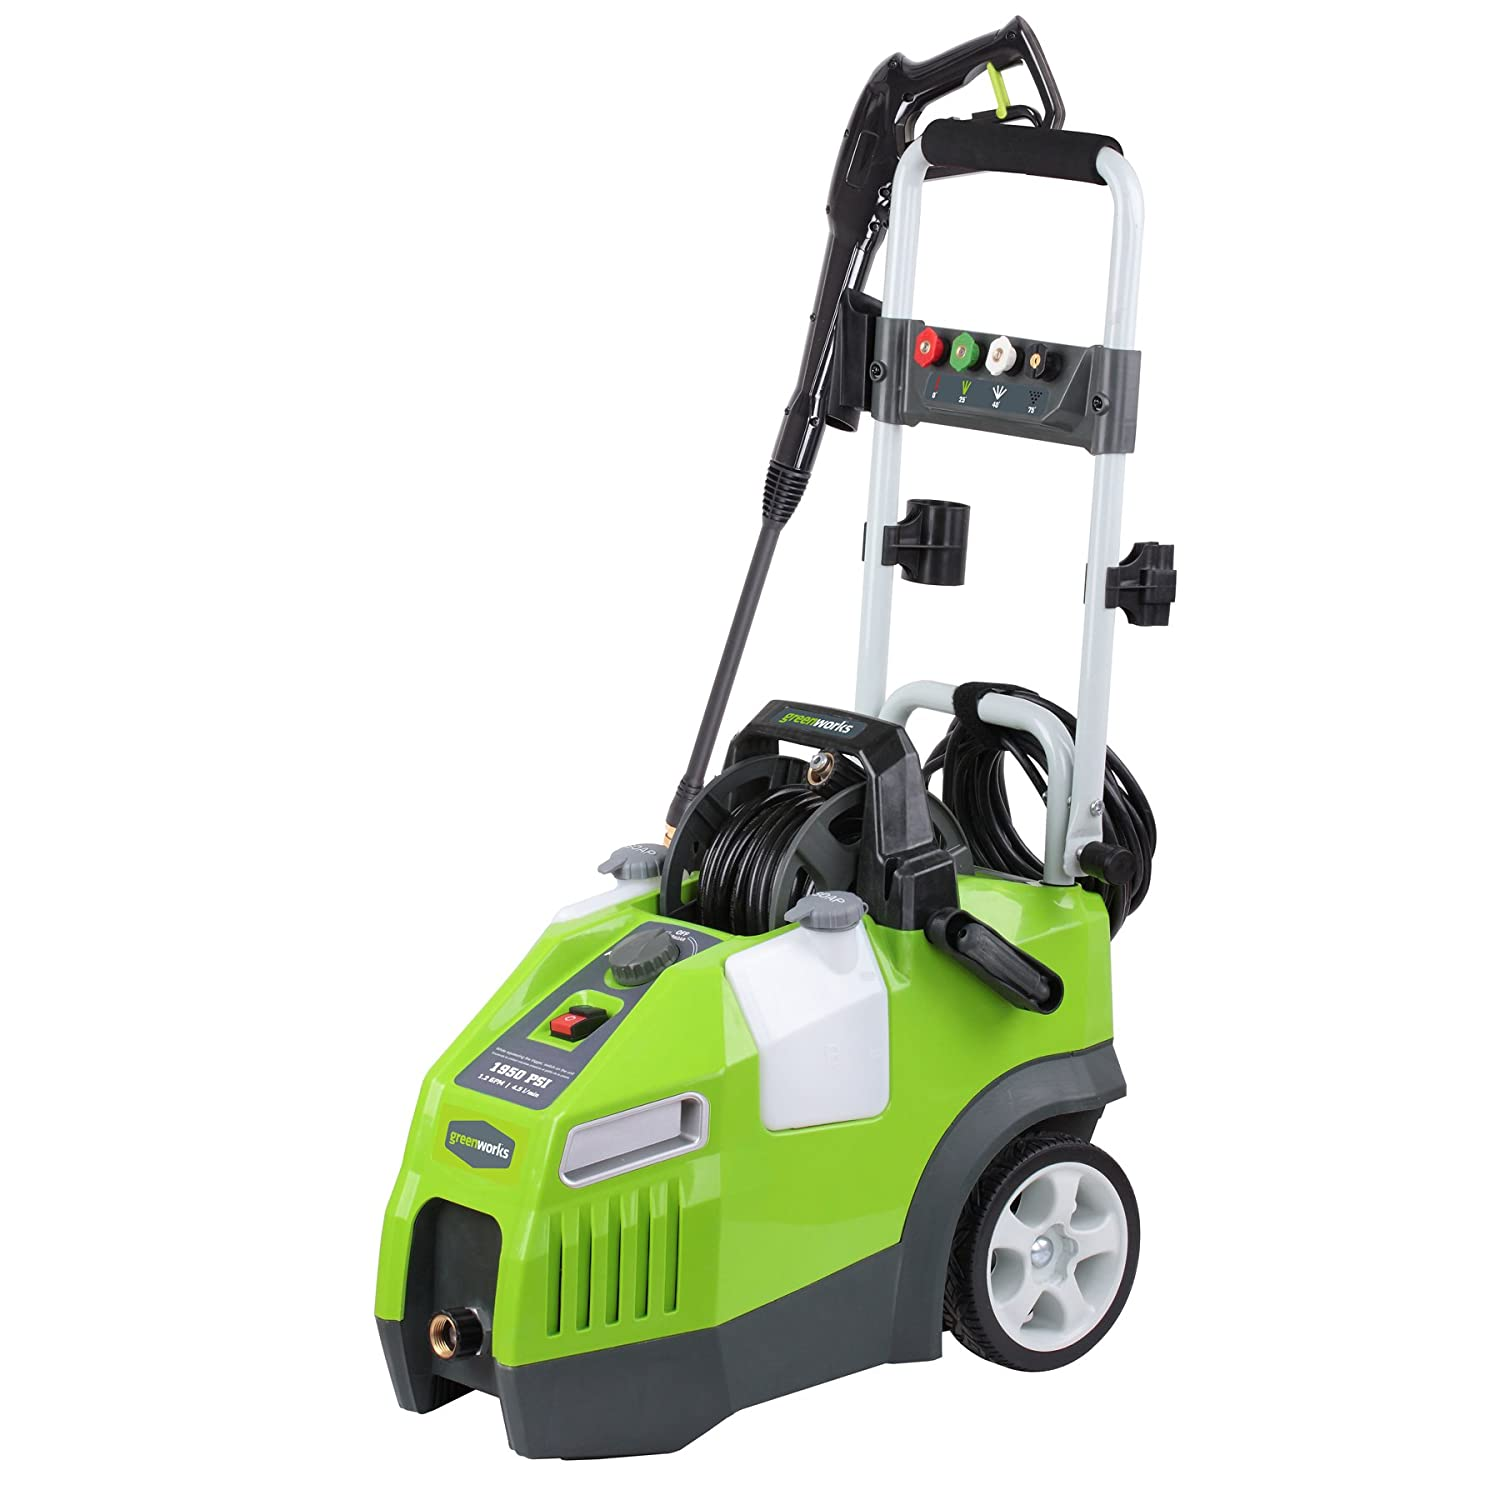 Amazon Greenworks 1950 PSI 13 Amp 1 2 GPM Pressure Washer with